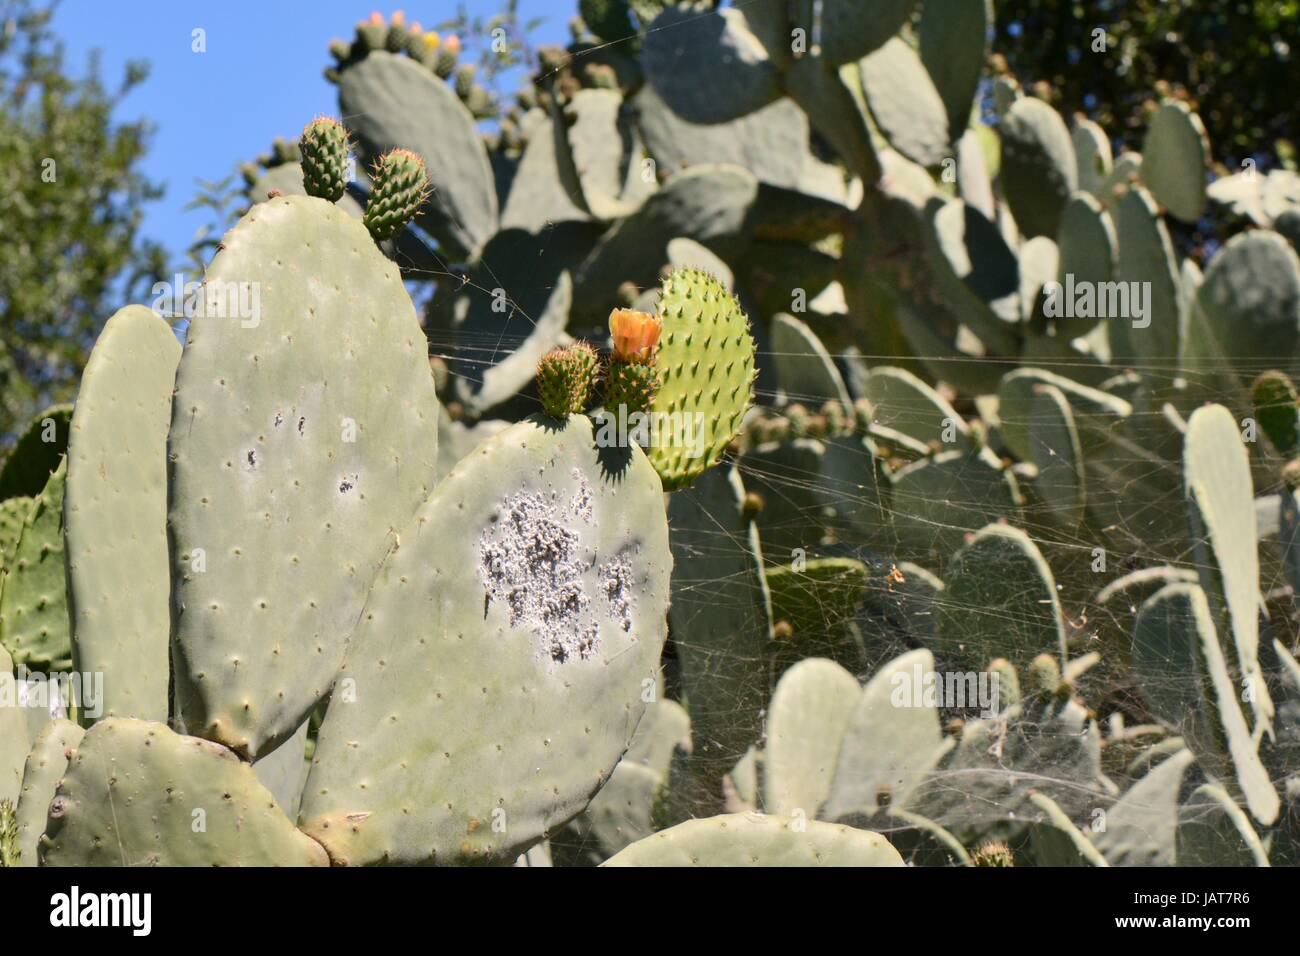 Cochineal insect (Dactylopius coccus), colony of scale insects on Prickly pear cactus / Barbary fig, Gran Canaria, - Stock Image